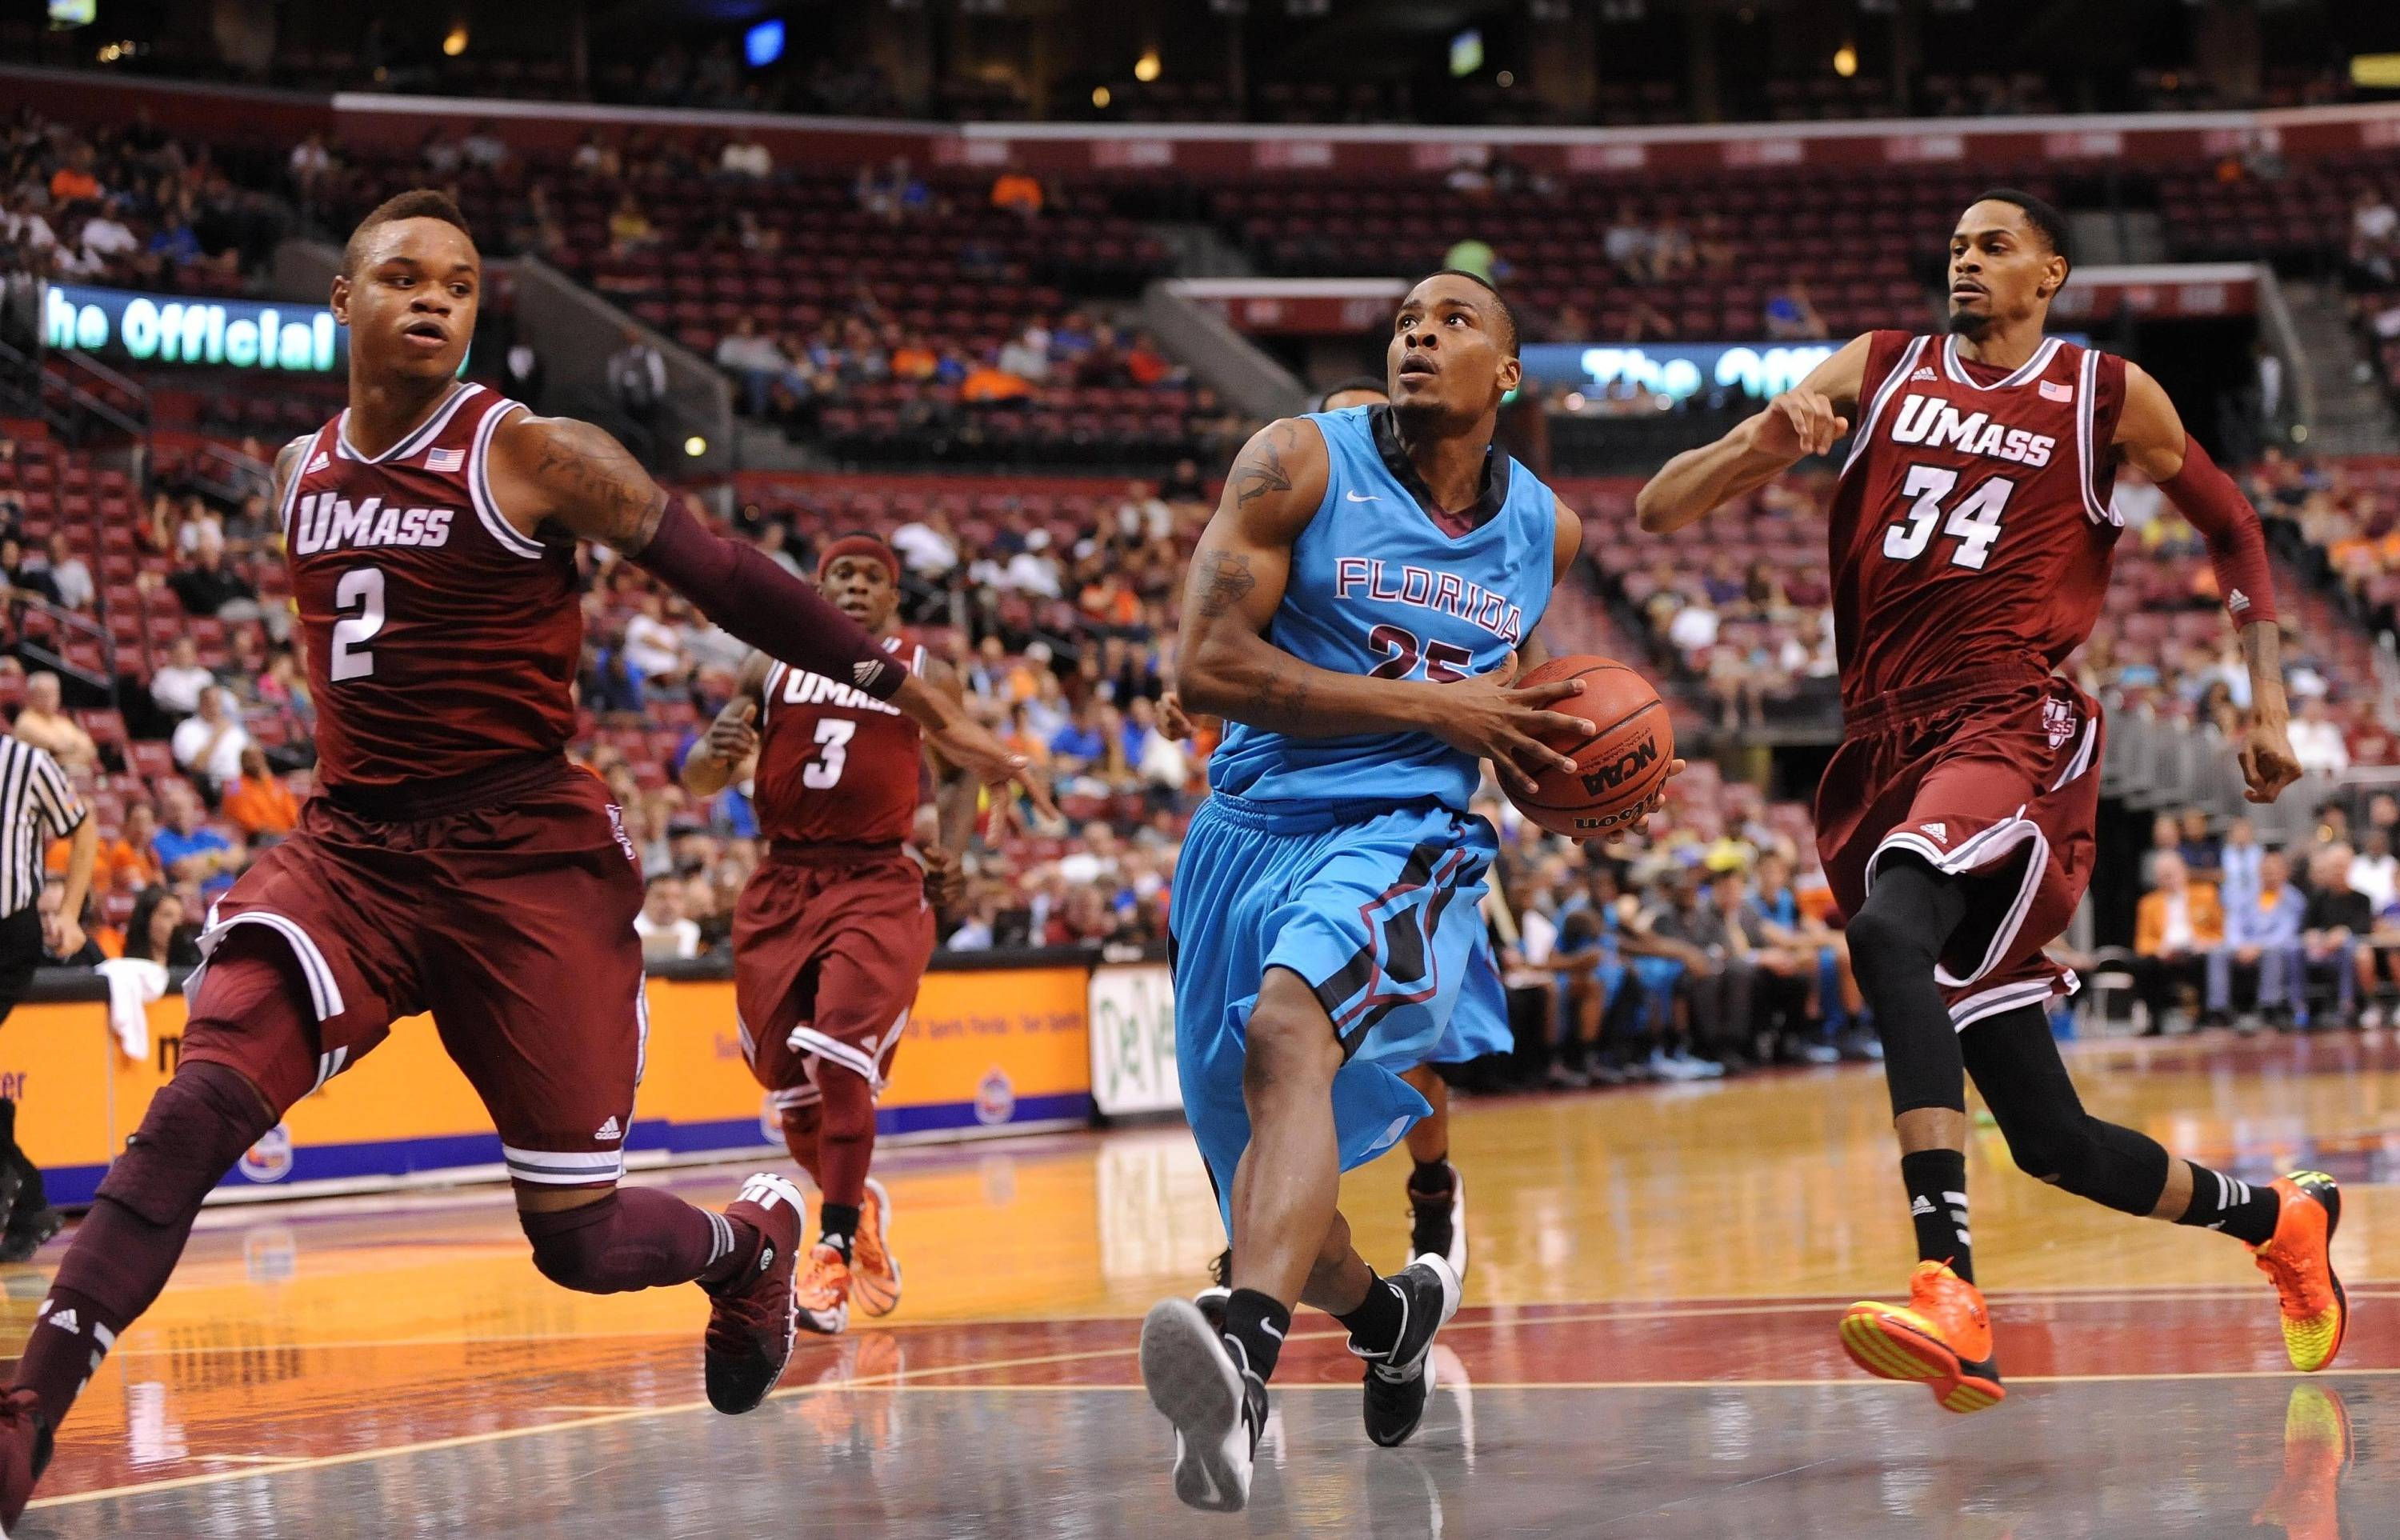 Dec 21, 2013; Sunrise, FL, USA; Florida State Seminoles guard Aaron Thomas (center) drives to the basket as Massachusetts Minutemen guard Derrick Gordon (left) and forward Raphiael Putney (right) defend during the first half at BB&T Center. Mandatory Credit: Steve Mitchell-USA TODAY Sports